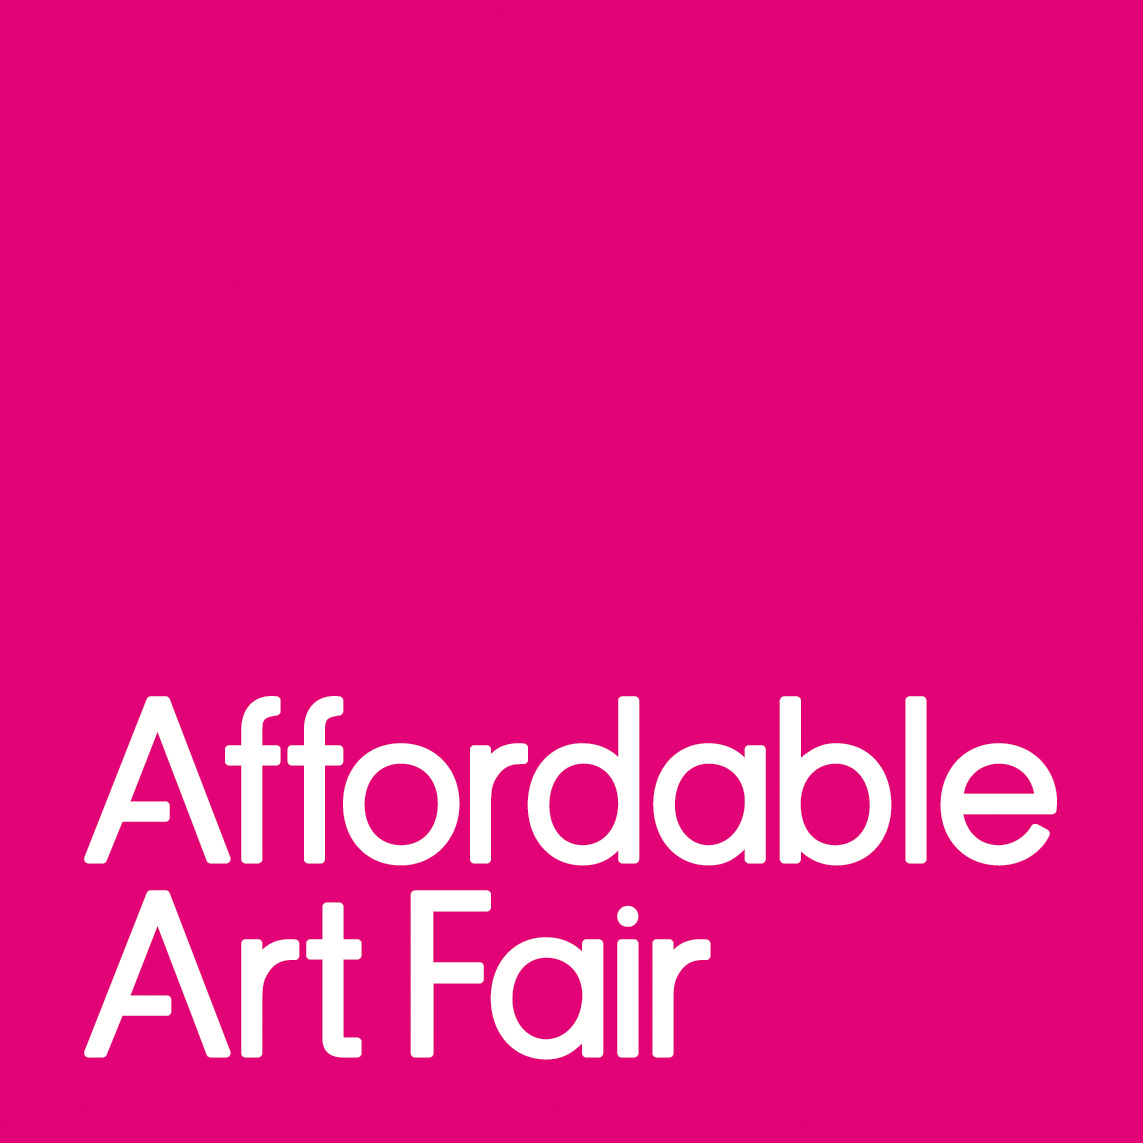 The Affordable Art Fair